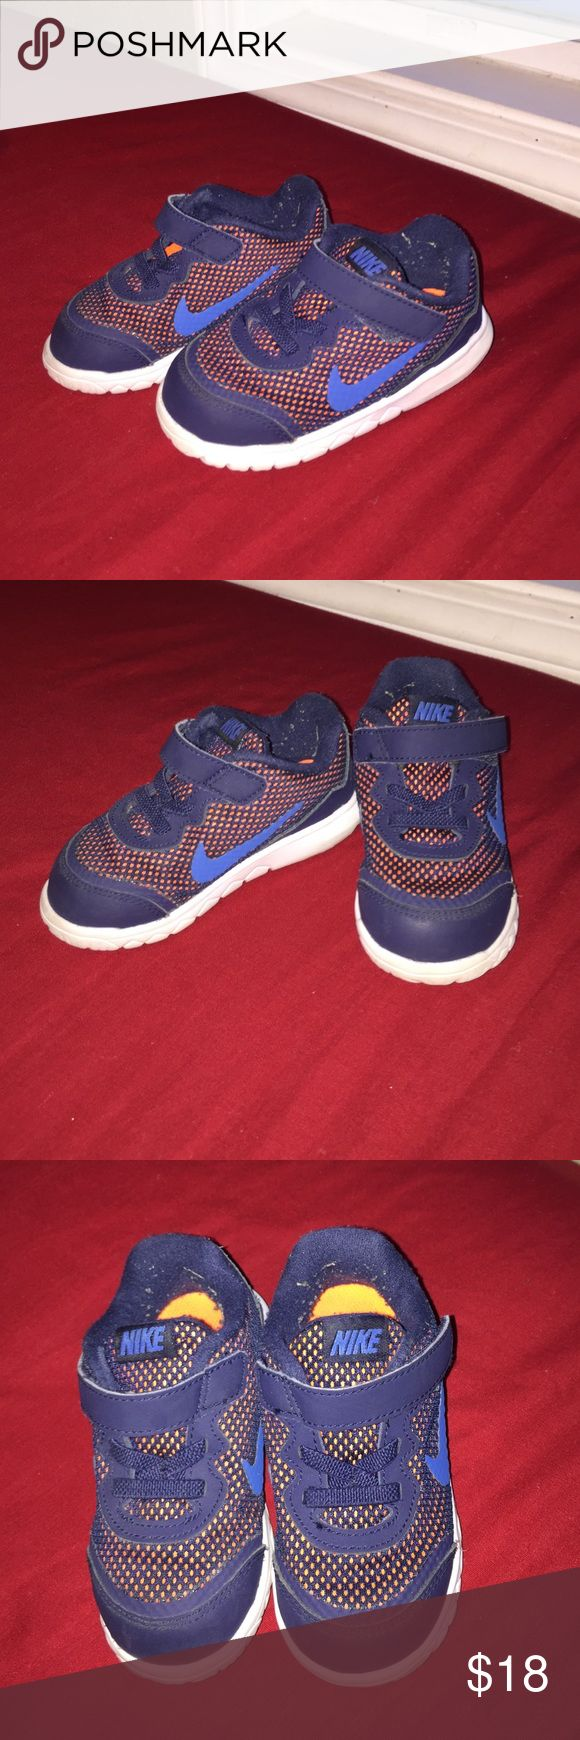 Baby Boy Nike Shoes Very cute for your little one. Like New Condition. Size 7C Nike Shoes Sneakers